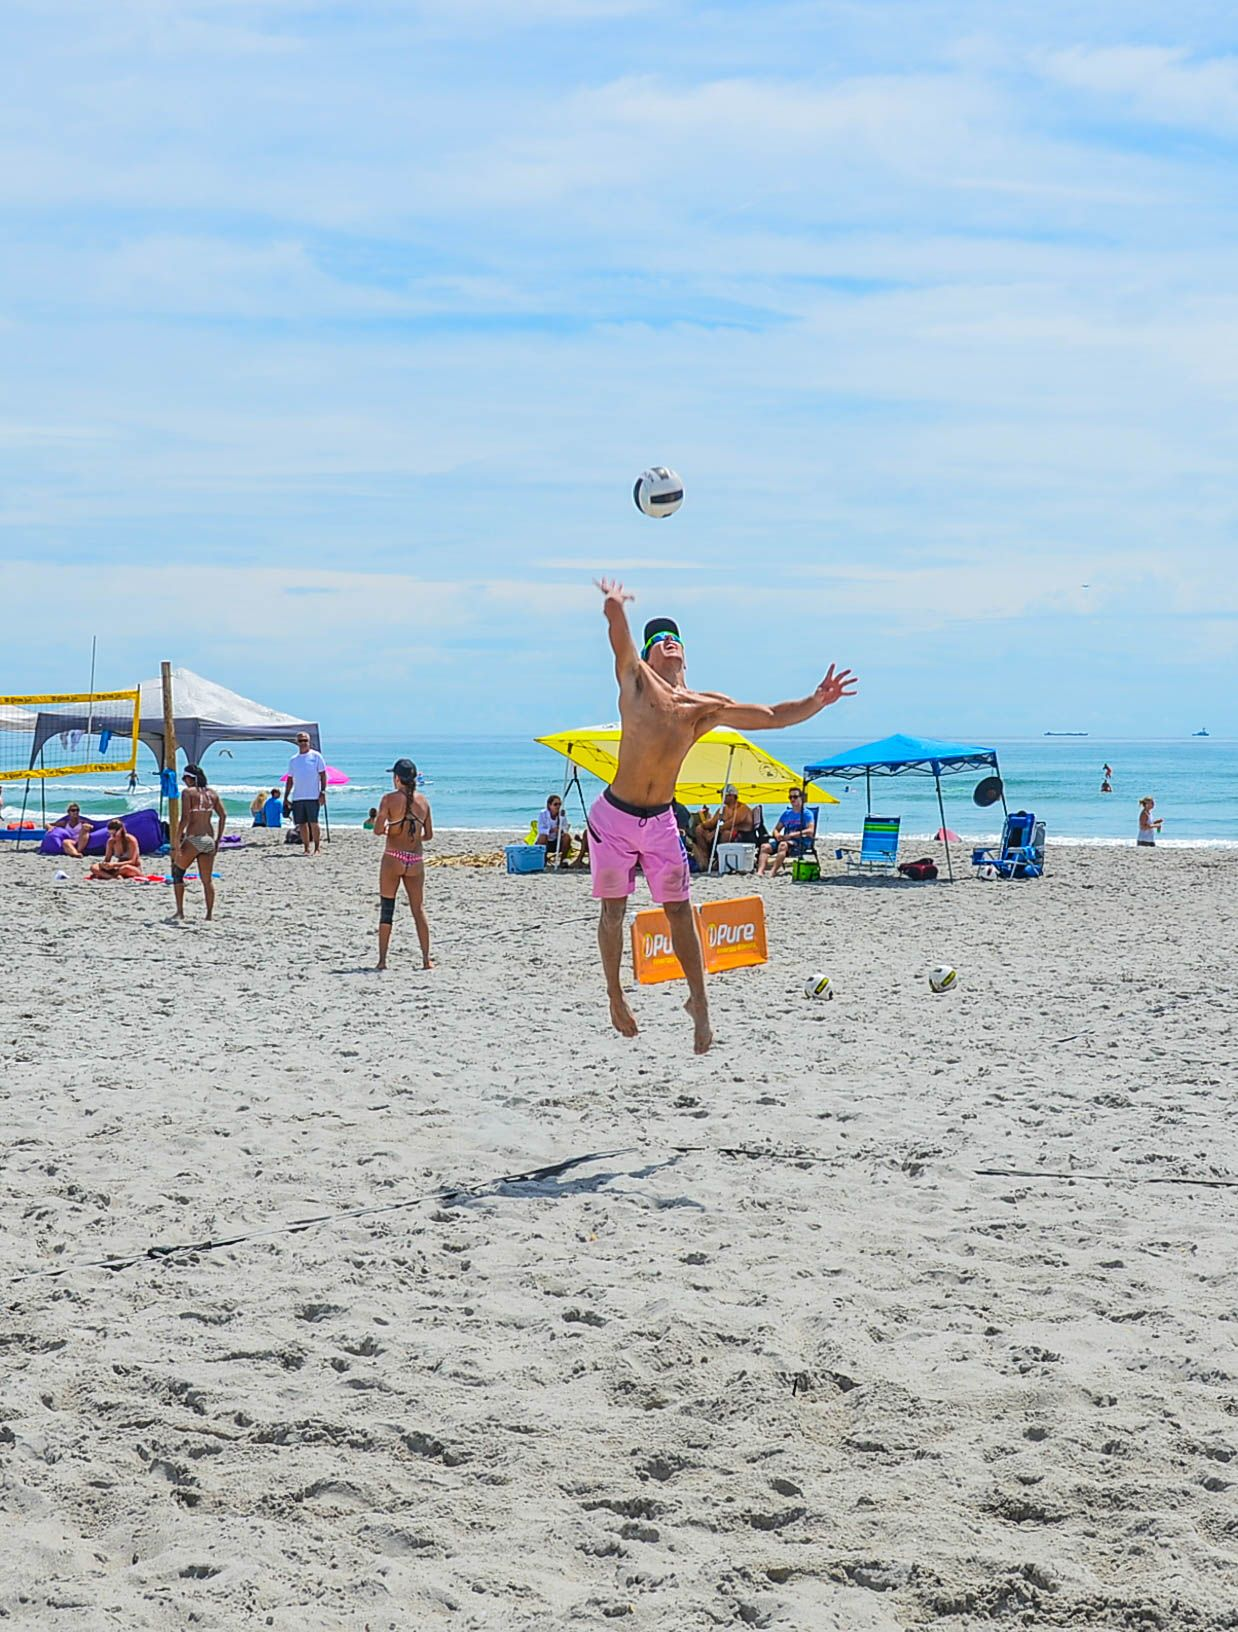 Tournament With This One Doubles Florida Beachvolleyball 1stplace Beach Volleyball Volleyball Florida